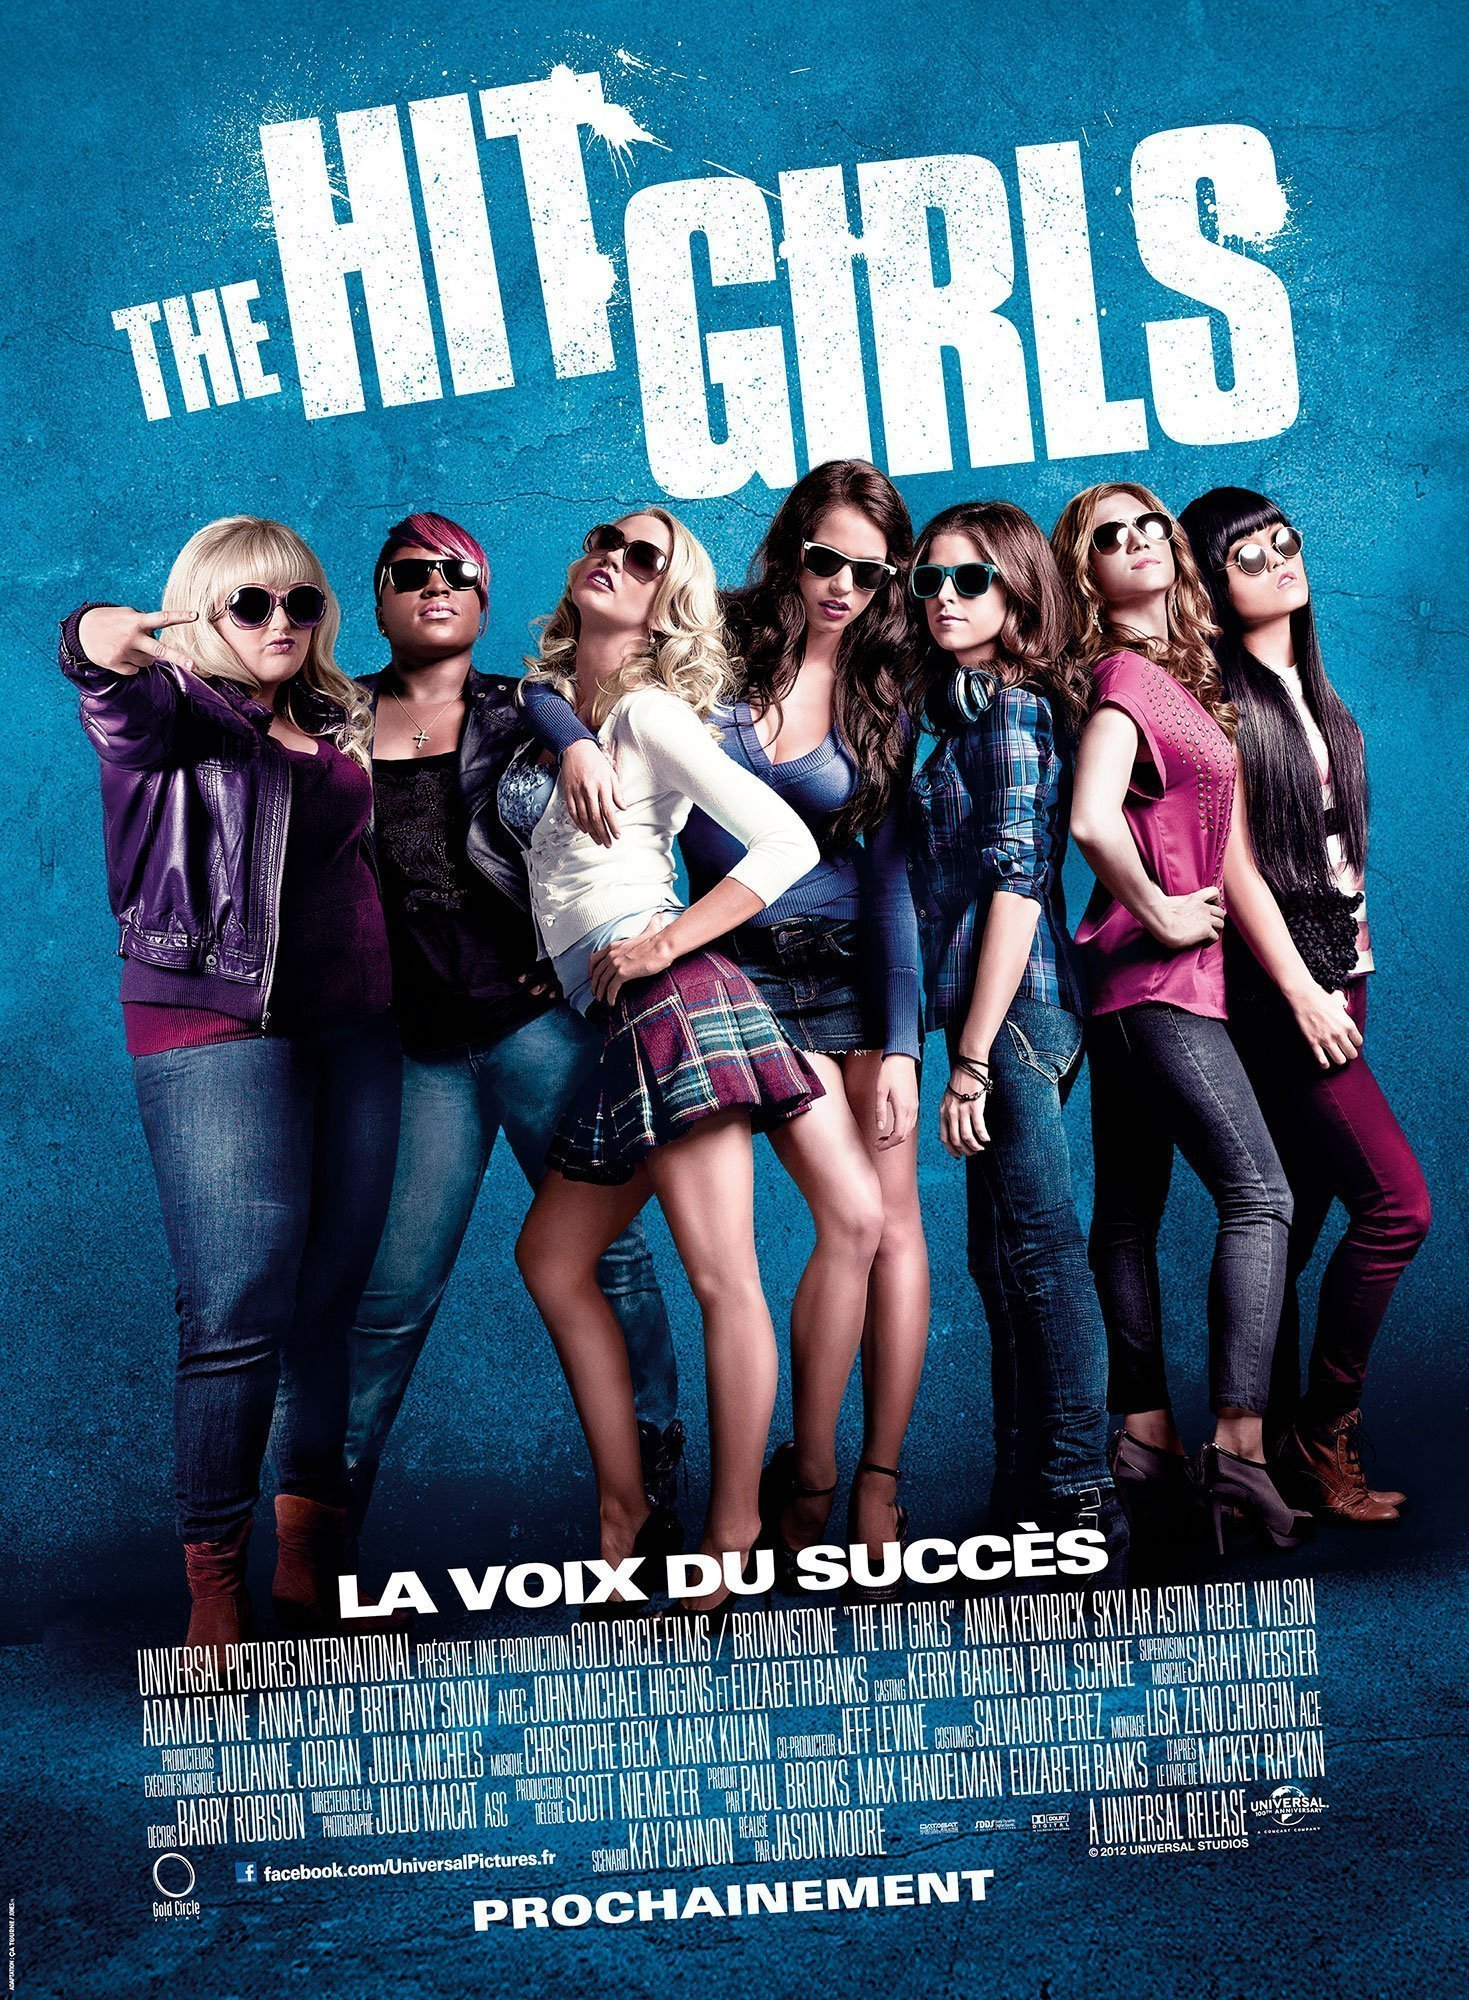 Affiche du film The Hit Girls réalisé par Jason Moore avec Anna Kendrick et Rebel Wilson